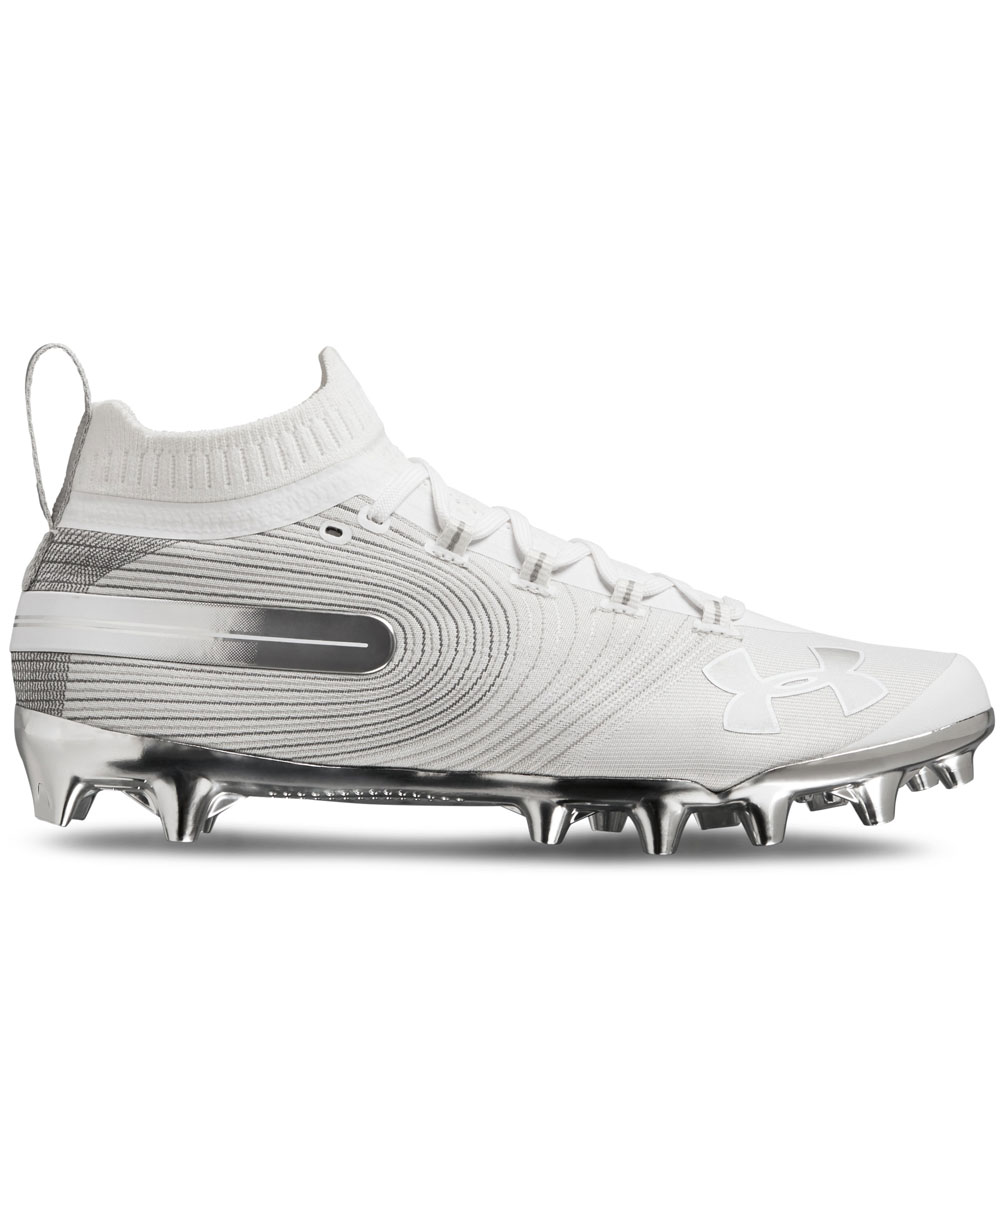 9df8ee46c40 Under Armour Men s Spotlight MC American Football Cleats White